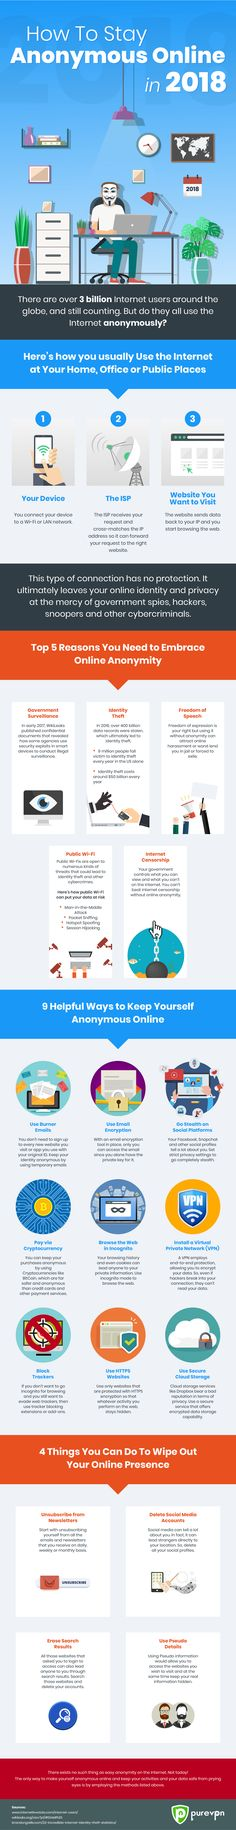 How to Stay Anonymous Online in 2018 #infographic #Internet #HowTo